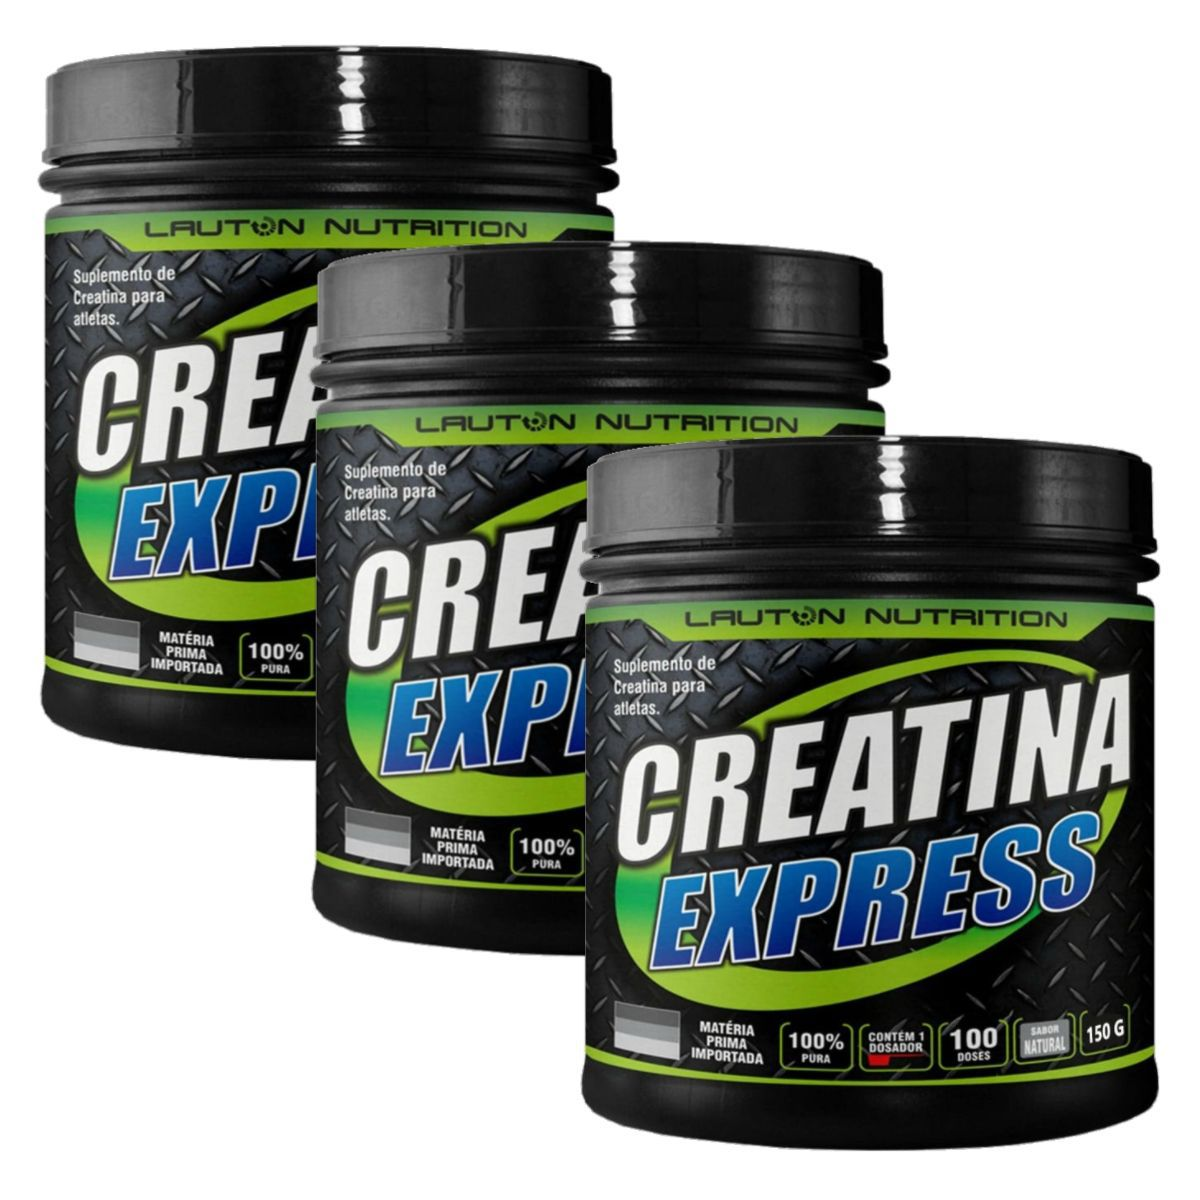 Kit 3 Creatinas Express 100% Pura 100g - Lauton Nutrition